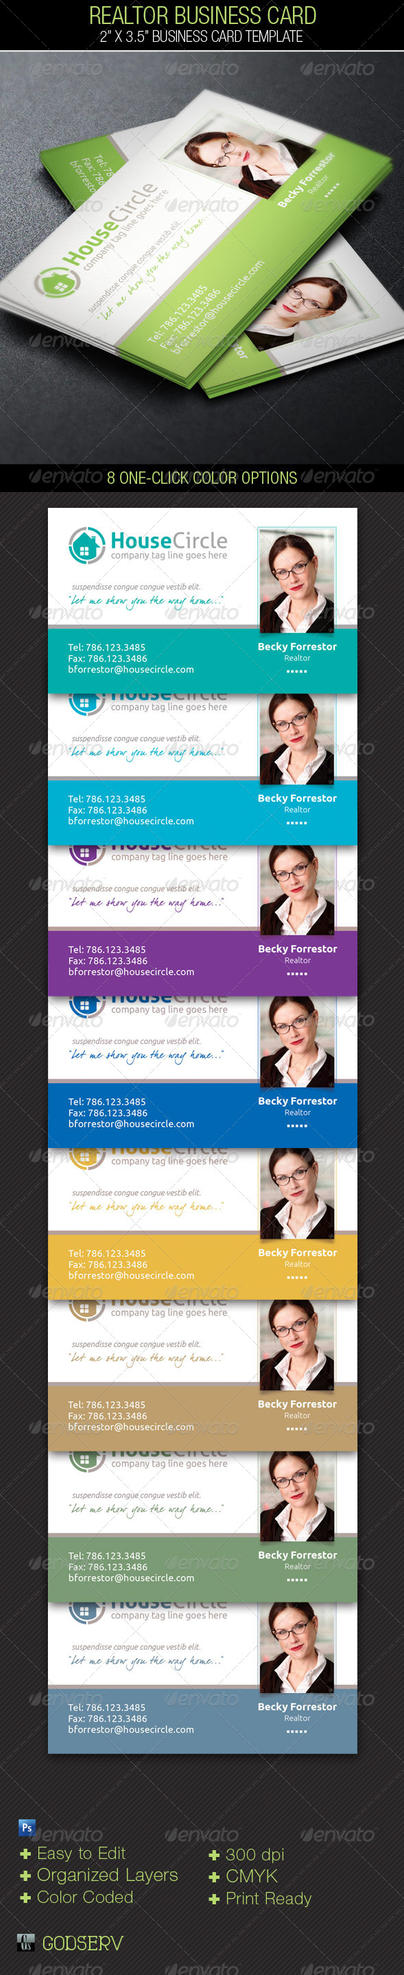 Realtor Business Card Template by Godserv